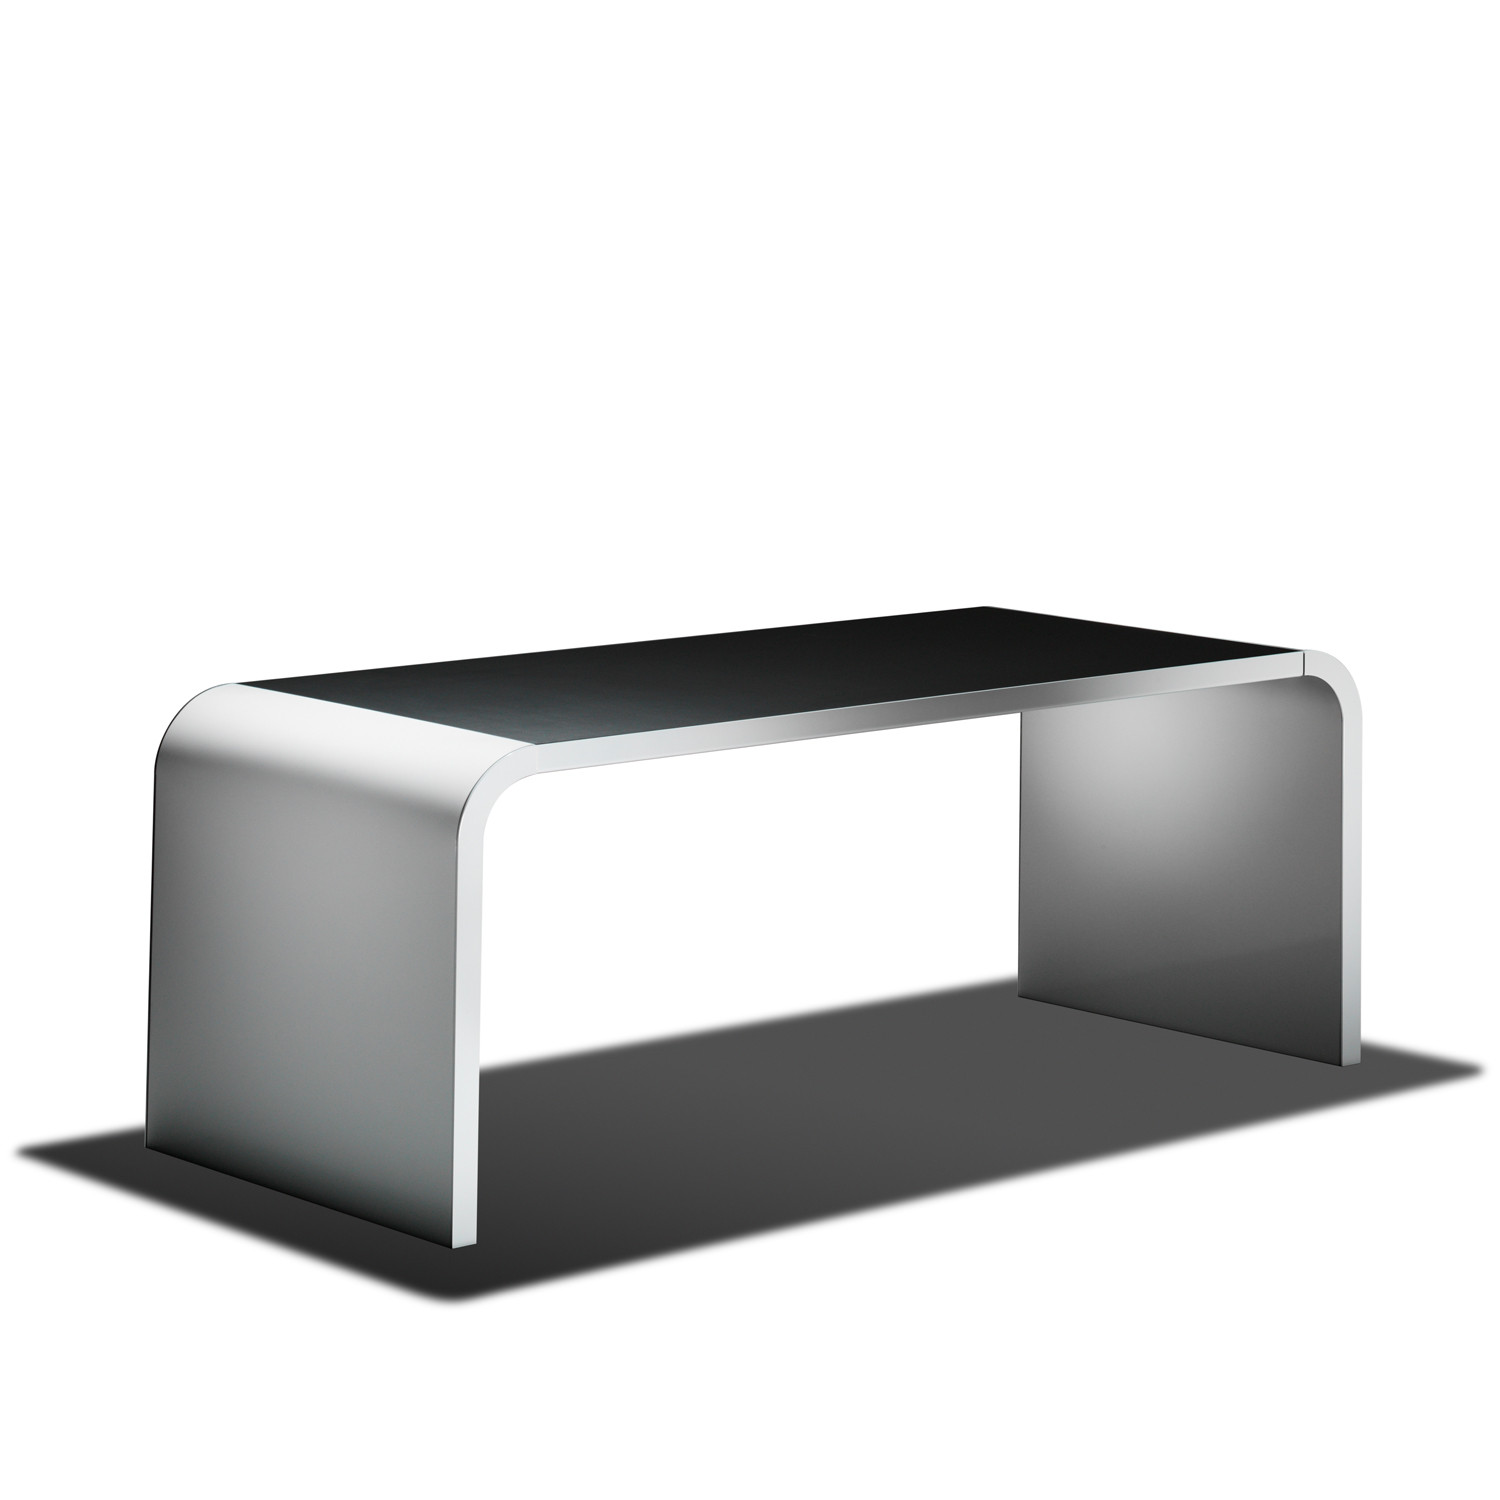 M10 Desk Office Furniture